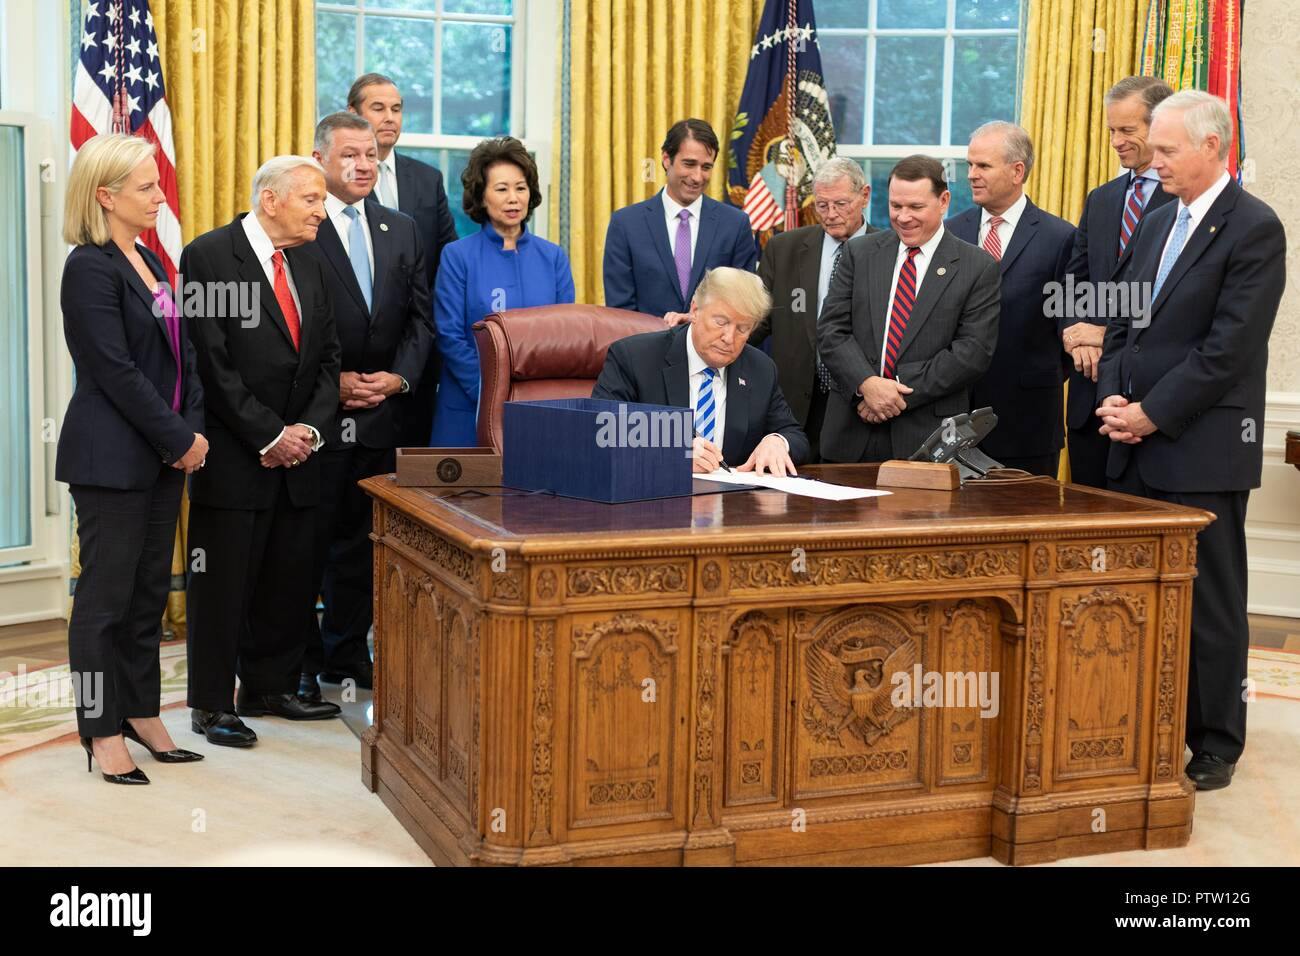 U.S President Donald Trump signs H.R. 302, the FAA reauthorization Act of 2018 in the Oval Office of the White House October 5, 2018 Washington, DC. - Stock Image